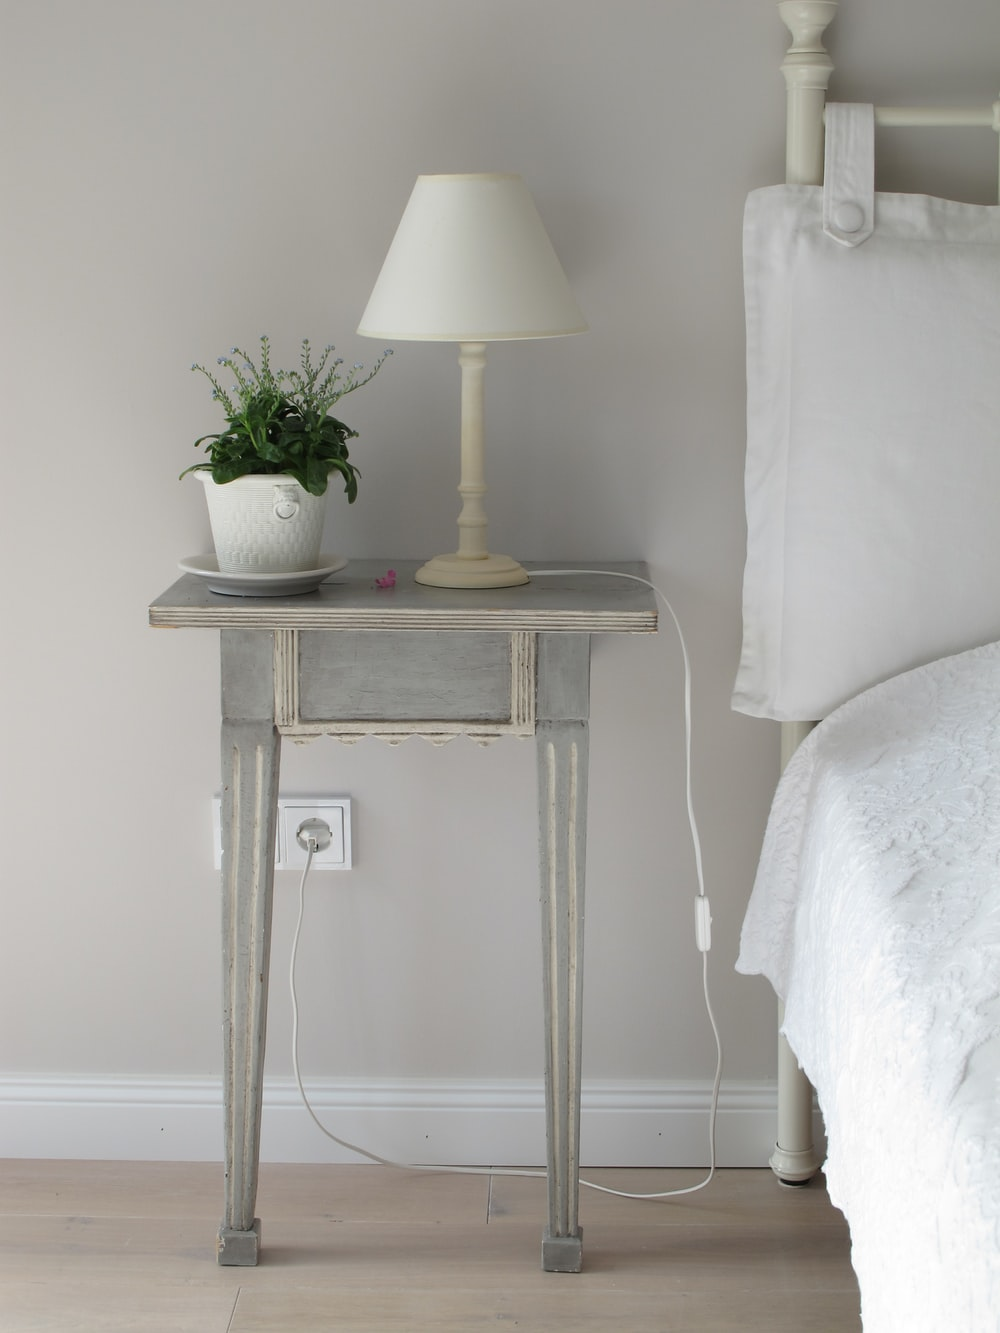 white table lamp on gray end table